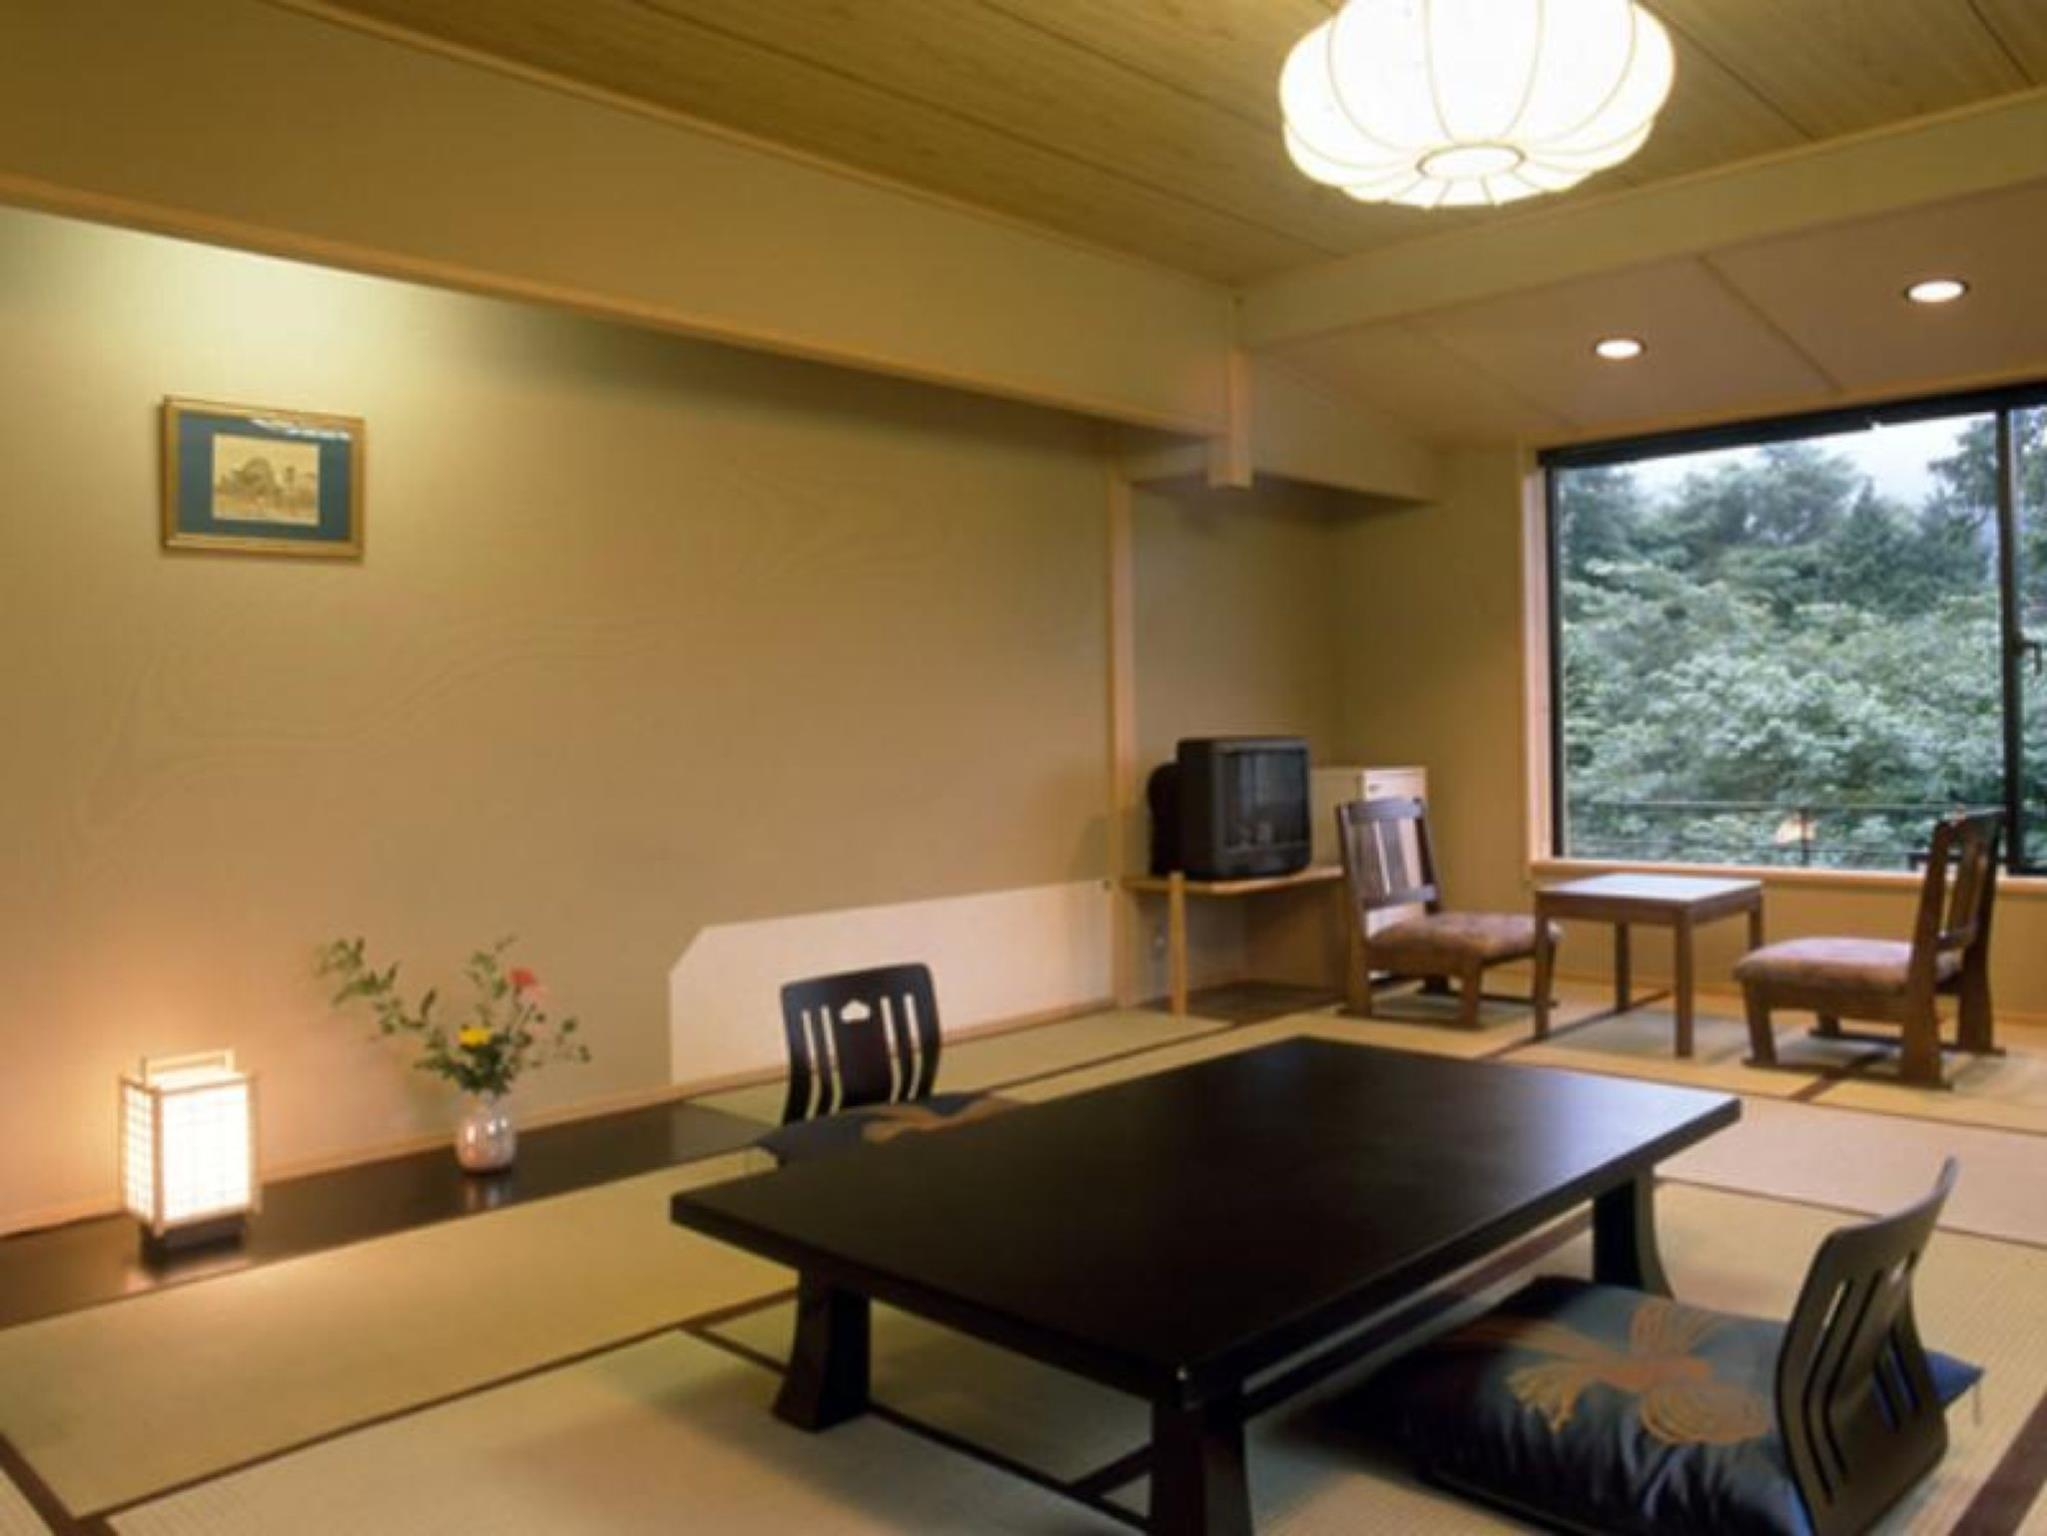 和室(4名・プライベートバスルーム) (Japanese Style Room for 4 People with Private Bathroom)